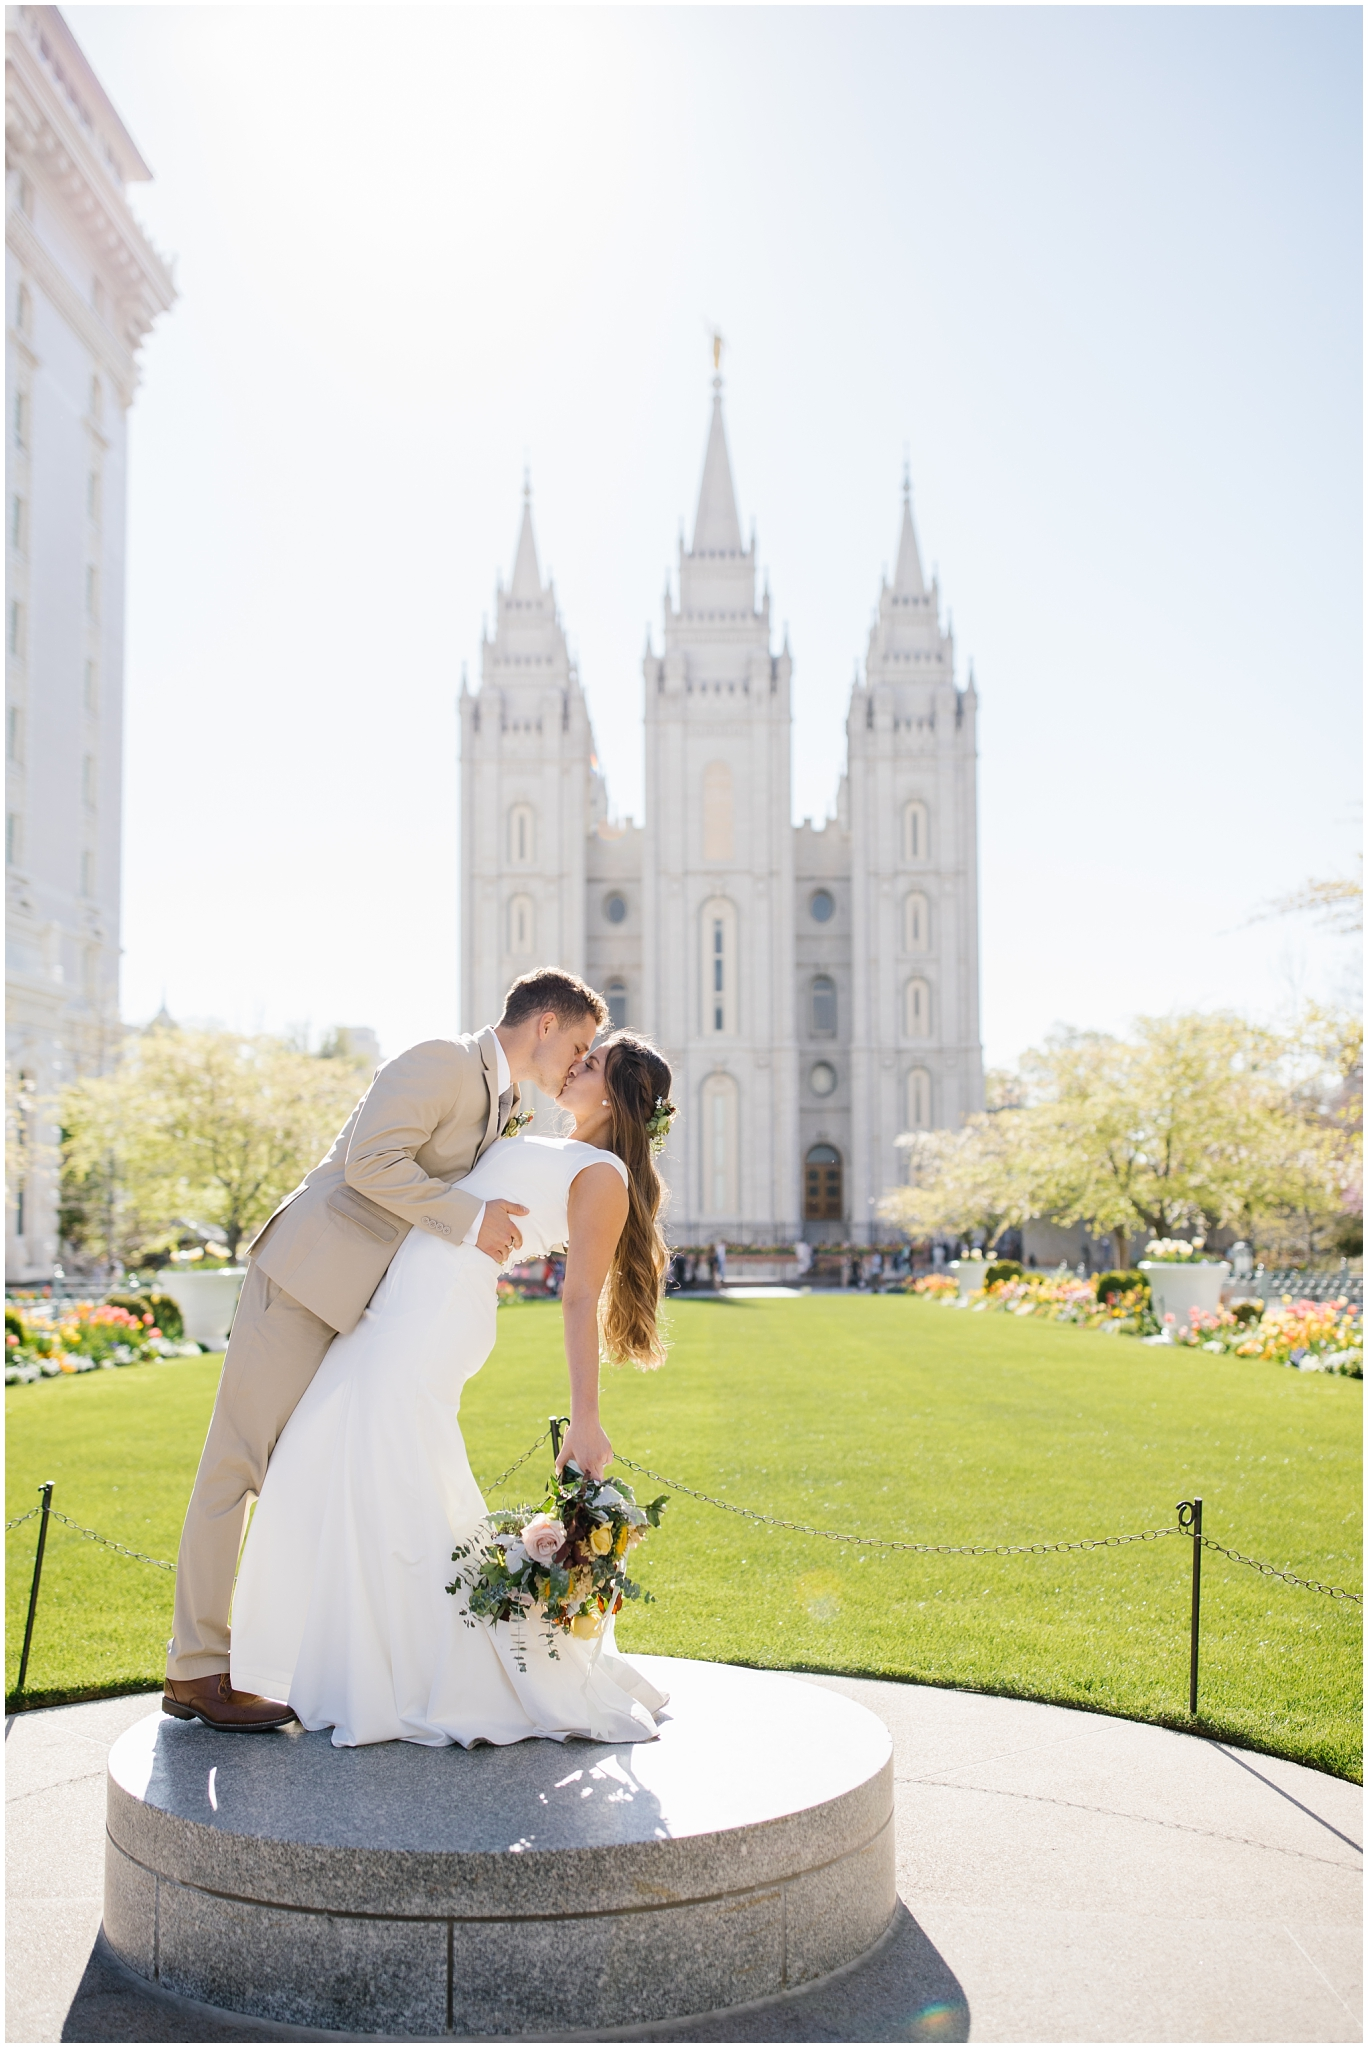 JC-Wedding-224_Lizzie-B-Imagery-Utah-Wedding-Photographer-Park-City-Salt-Lake-City-Temple-Joseph-Smith-Memorial-Building-Empire-Room.jpg